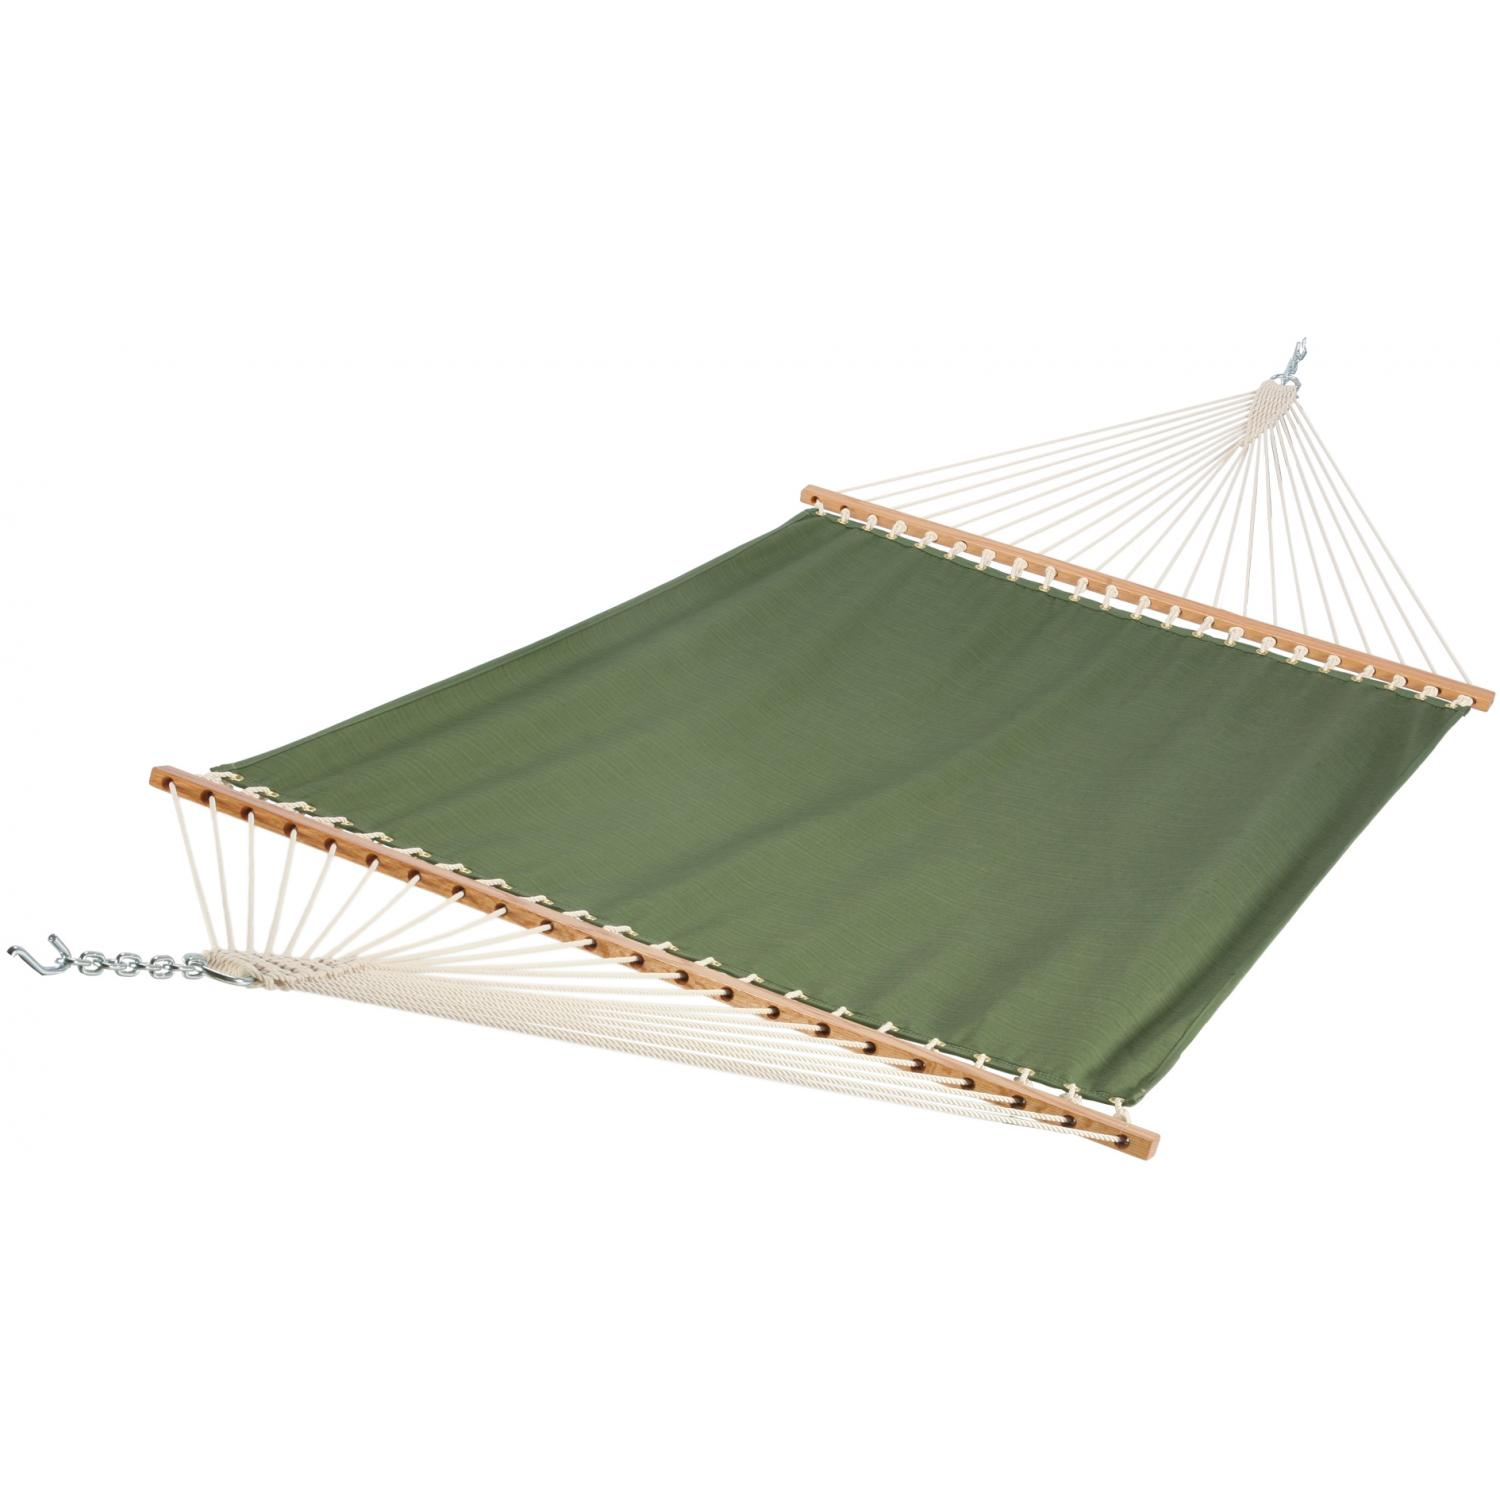 Pawleys Island FGN04 Large Quick-Dry Fabric Hammock - Dupione Palm